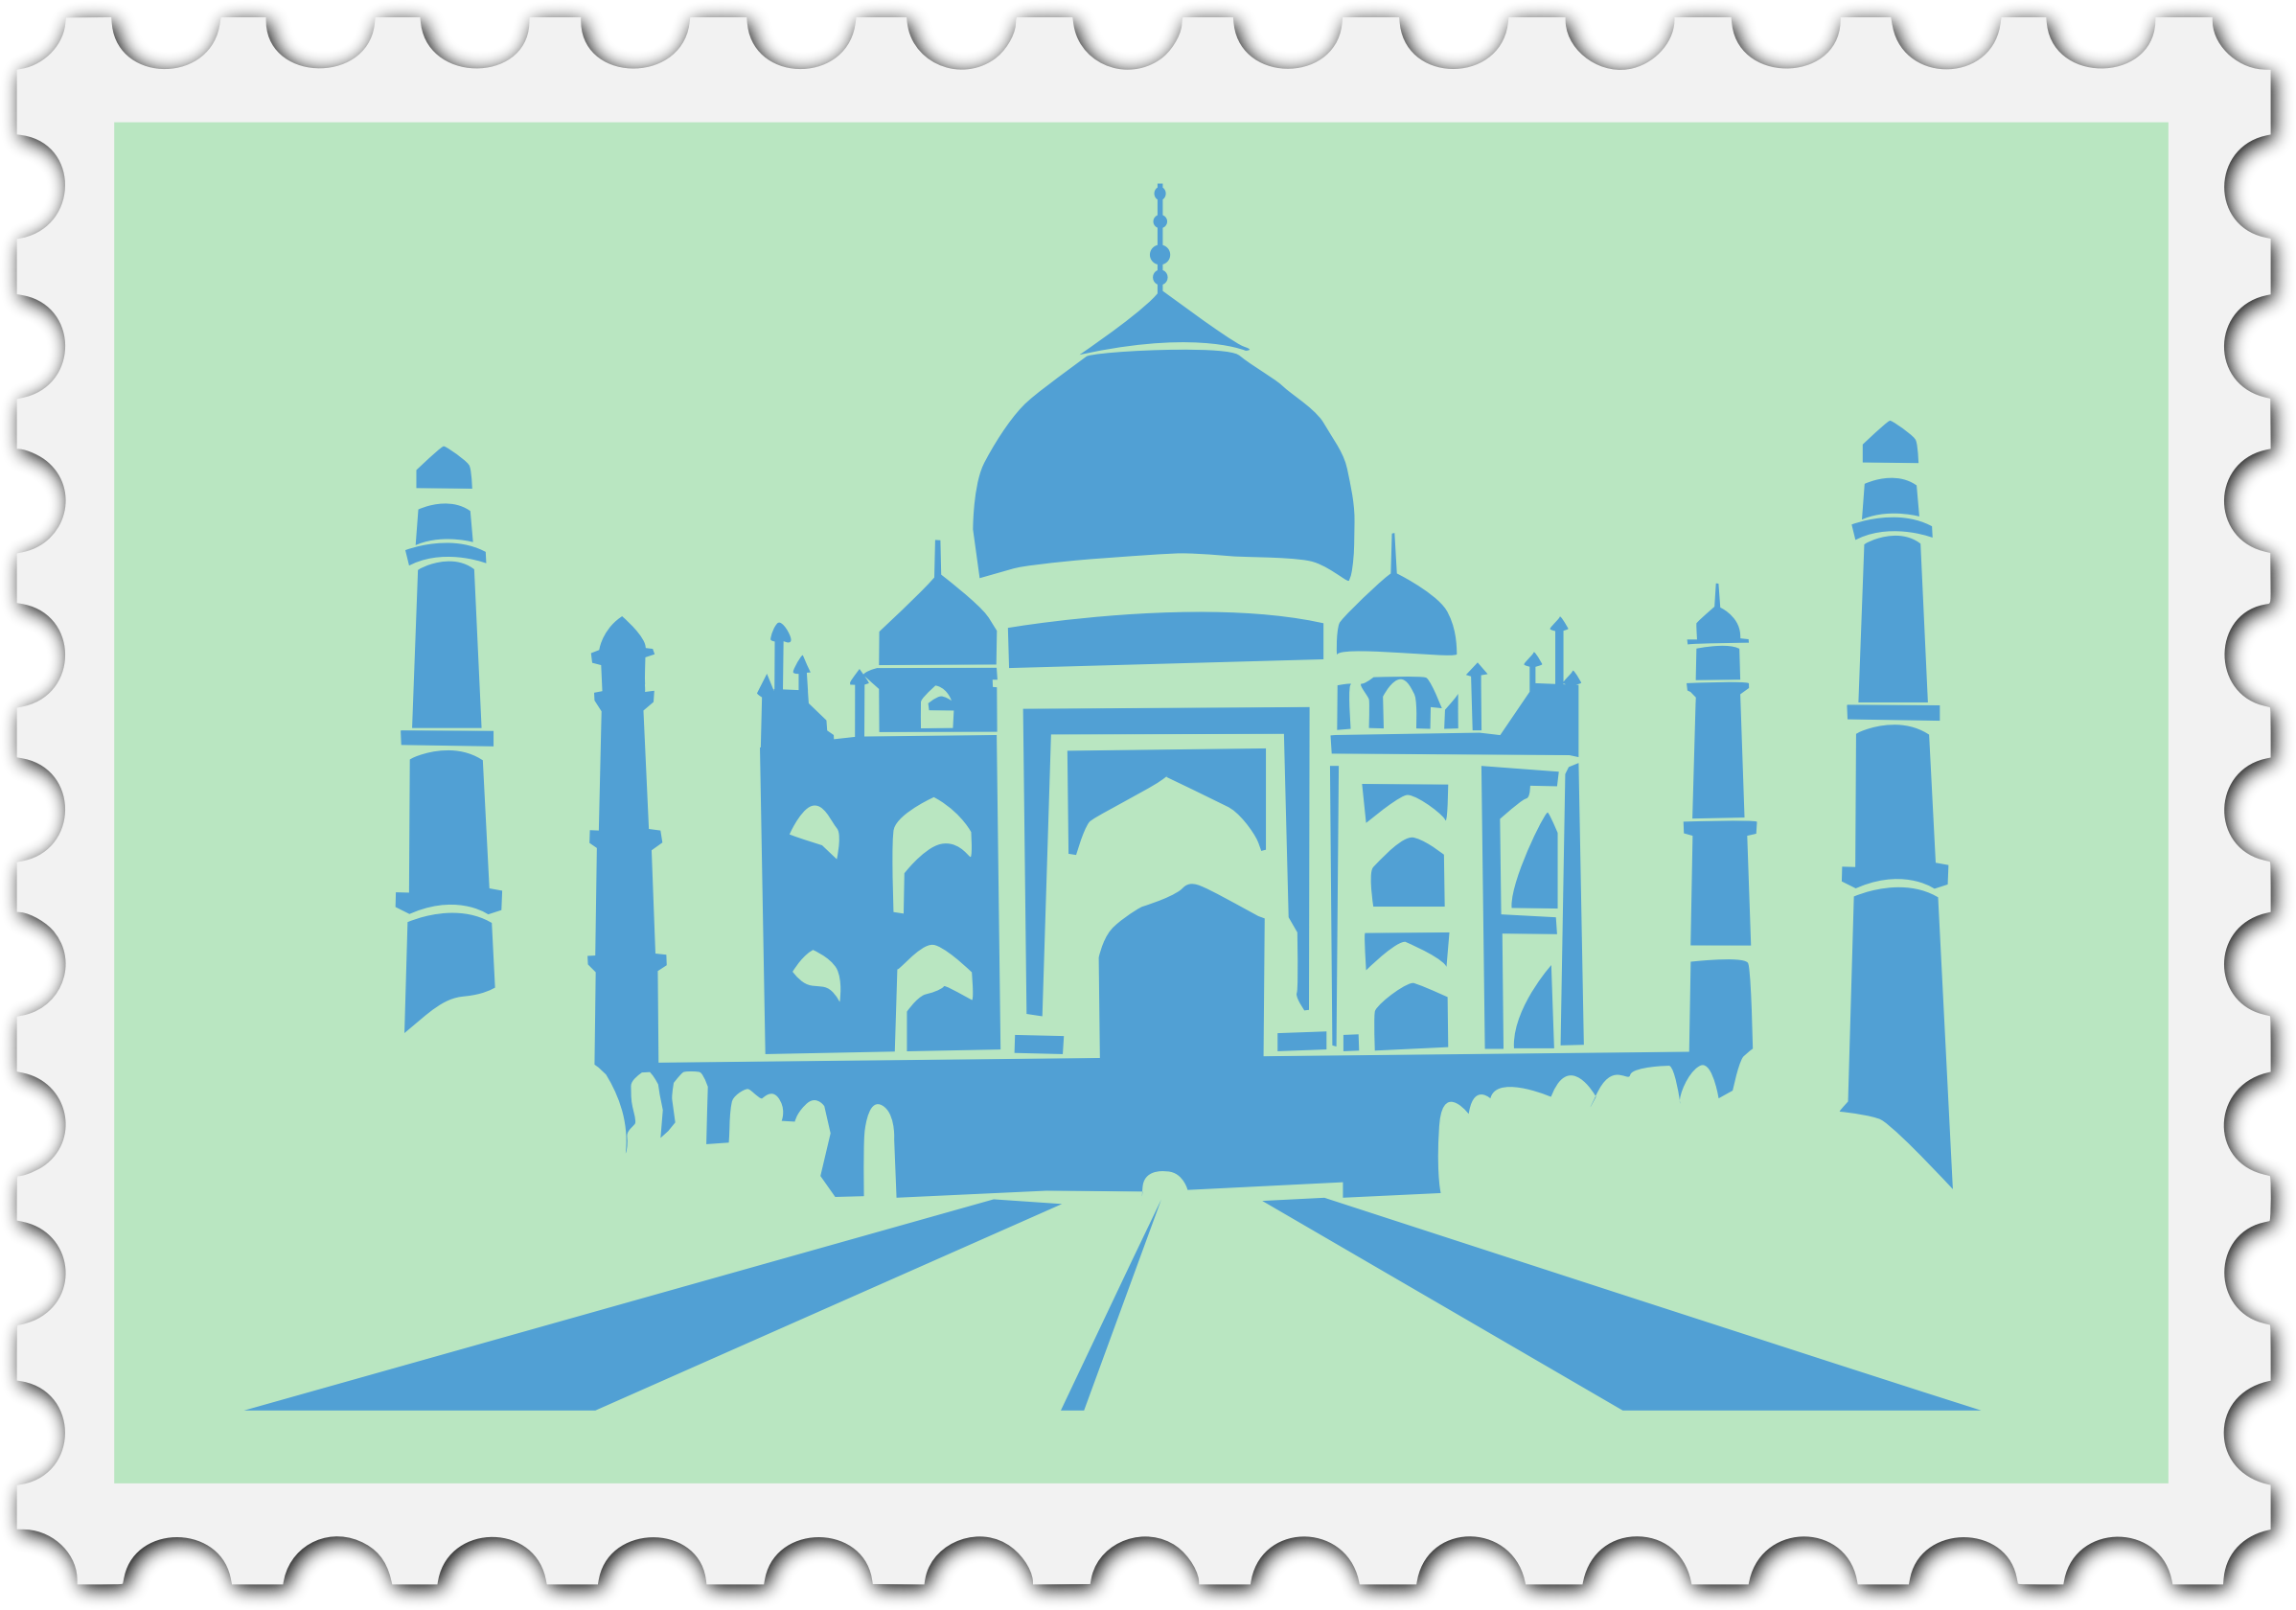 Indian stamp by Firkin